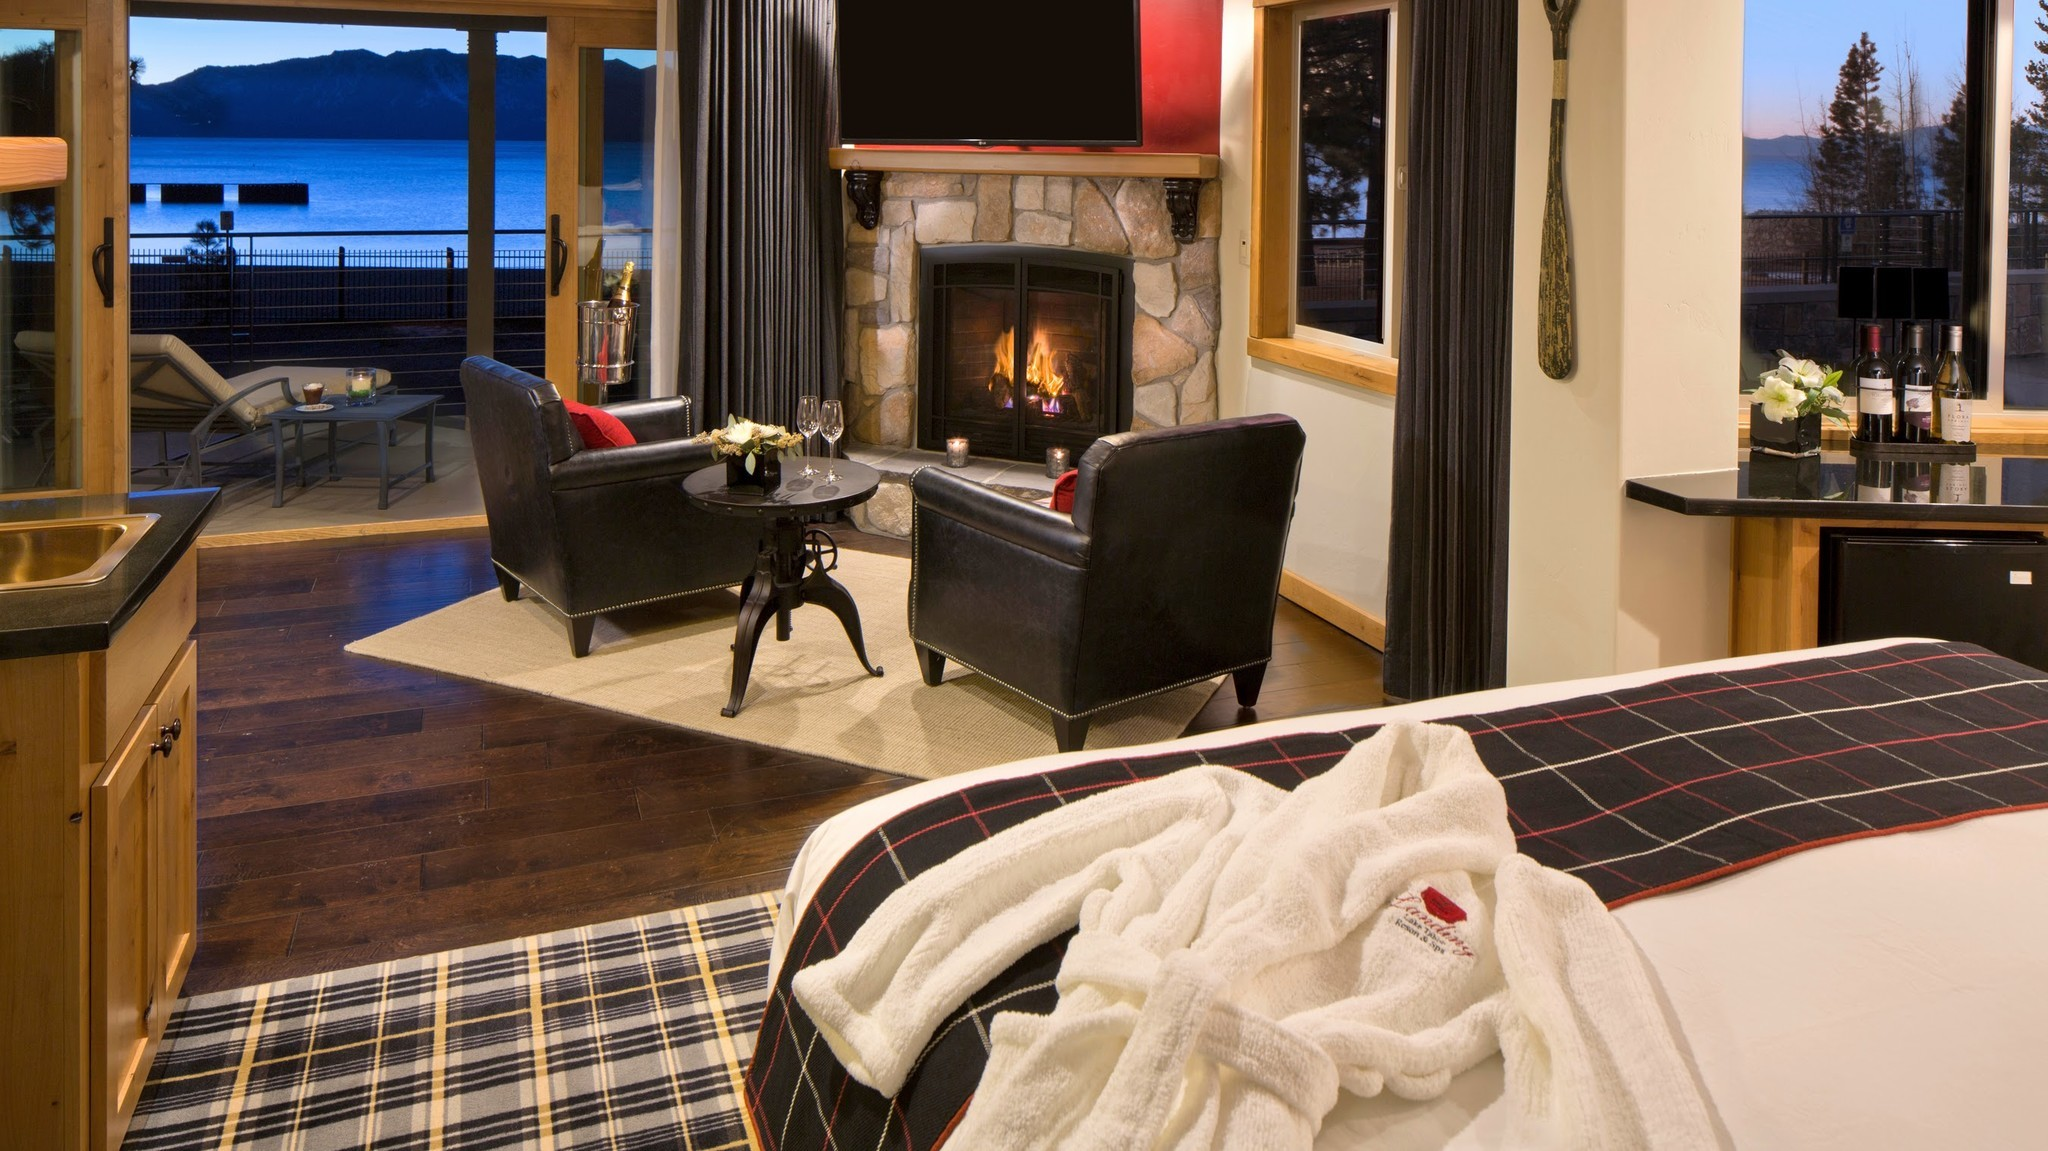 Two nights' lodging and spa treatments are part of the Landing's $1,500 package.